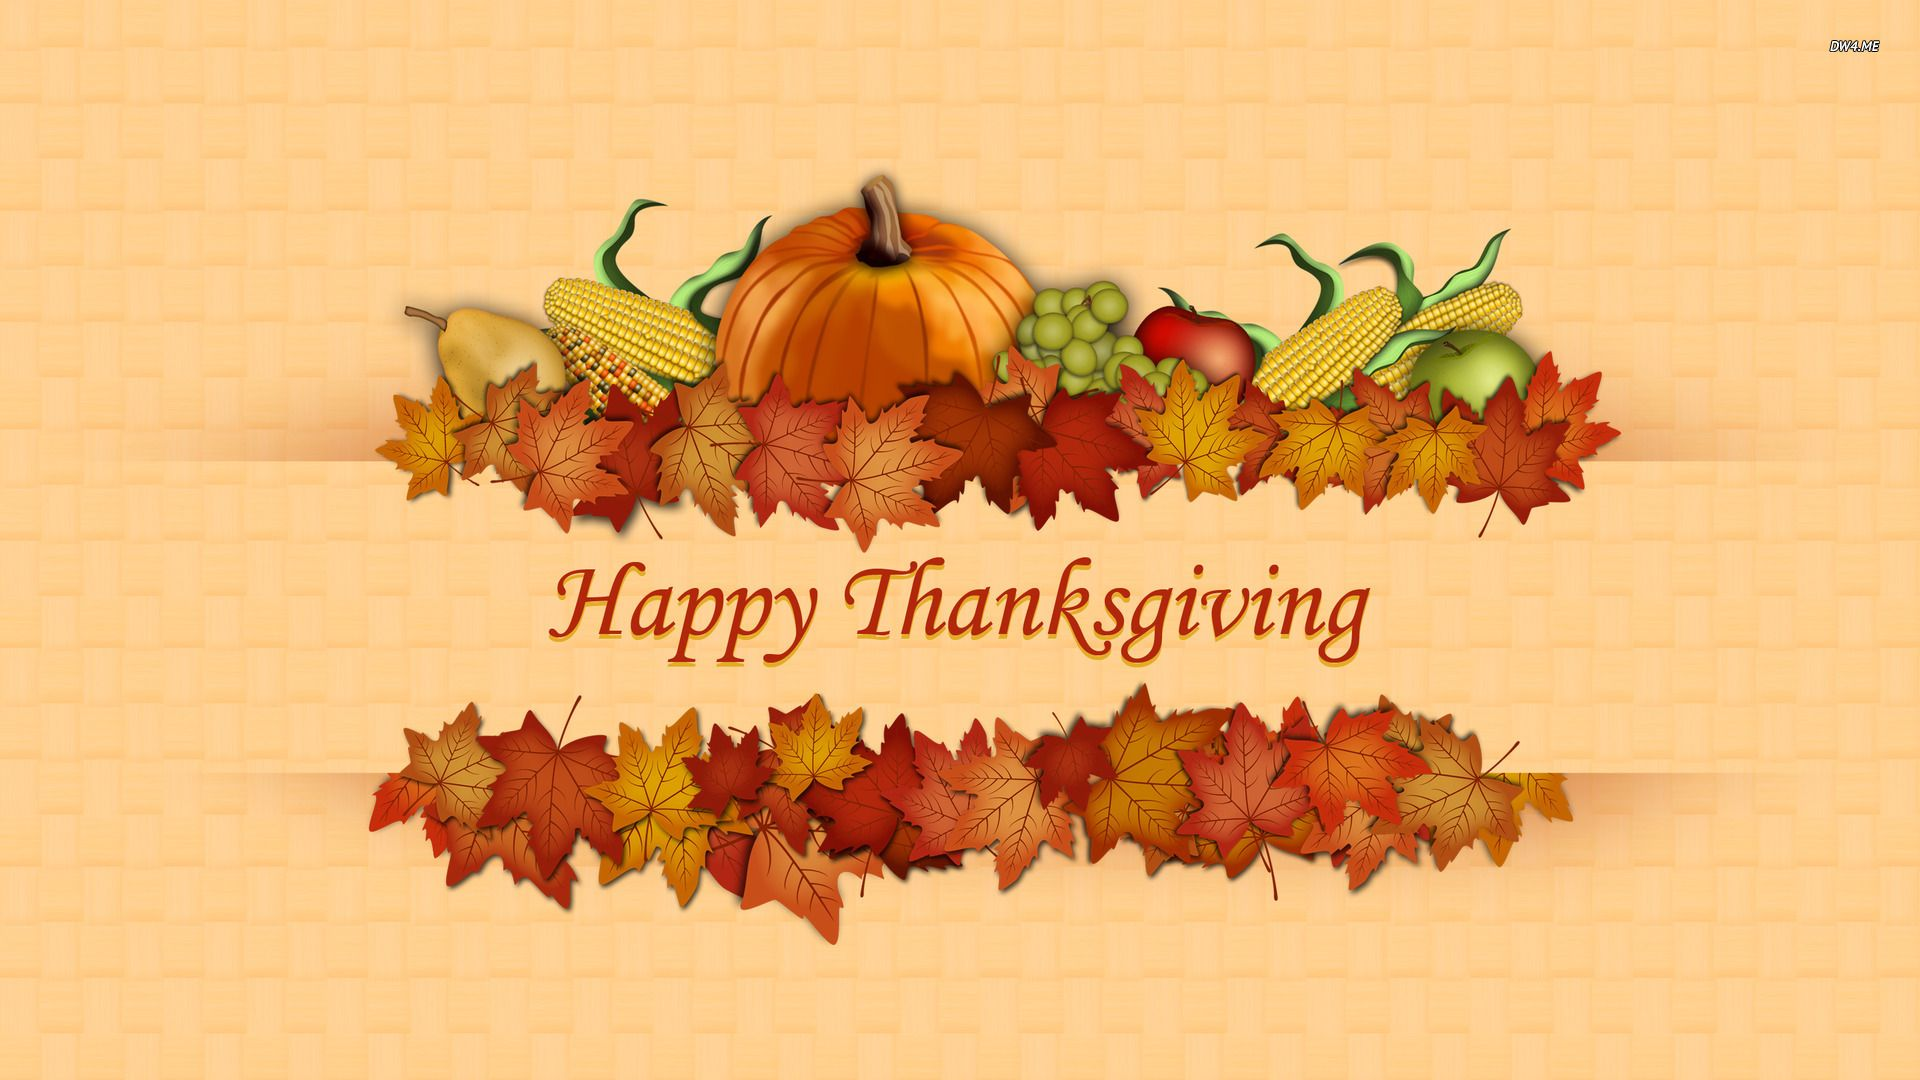 How to Make Thanksgiving NOT About Food Trusted Therapy Inc 1920x1080